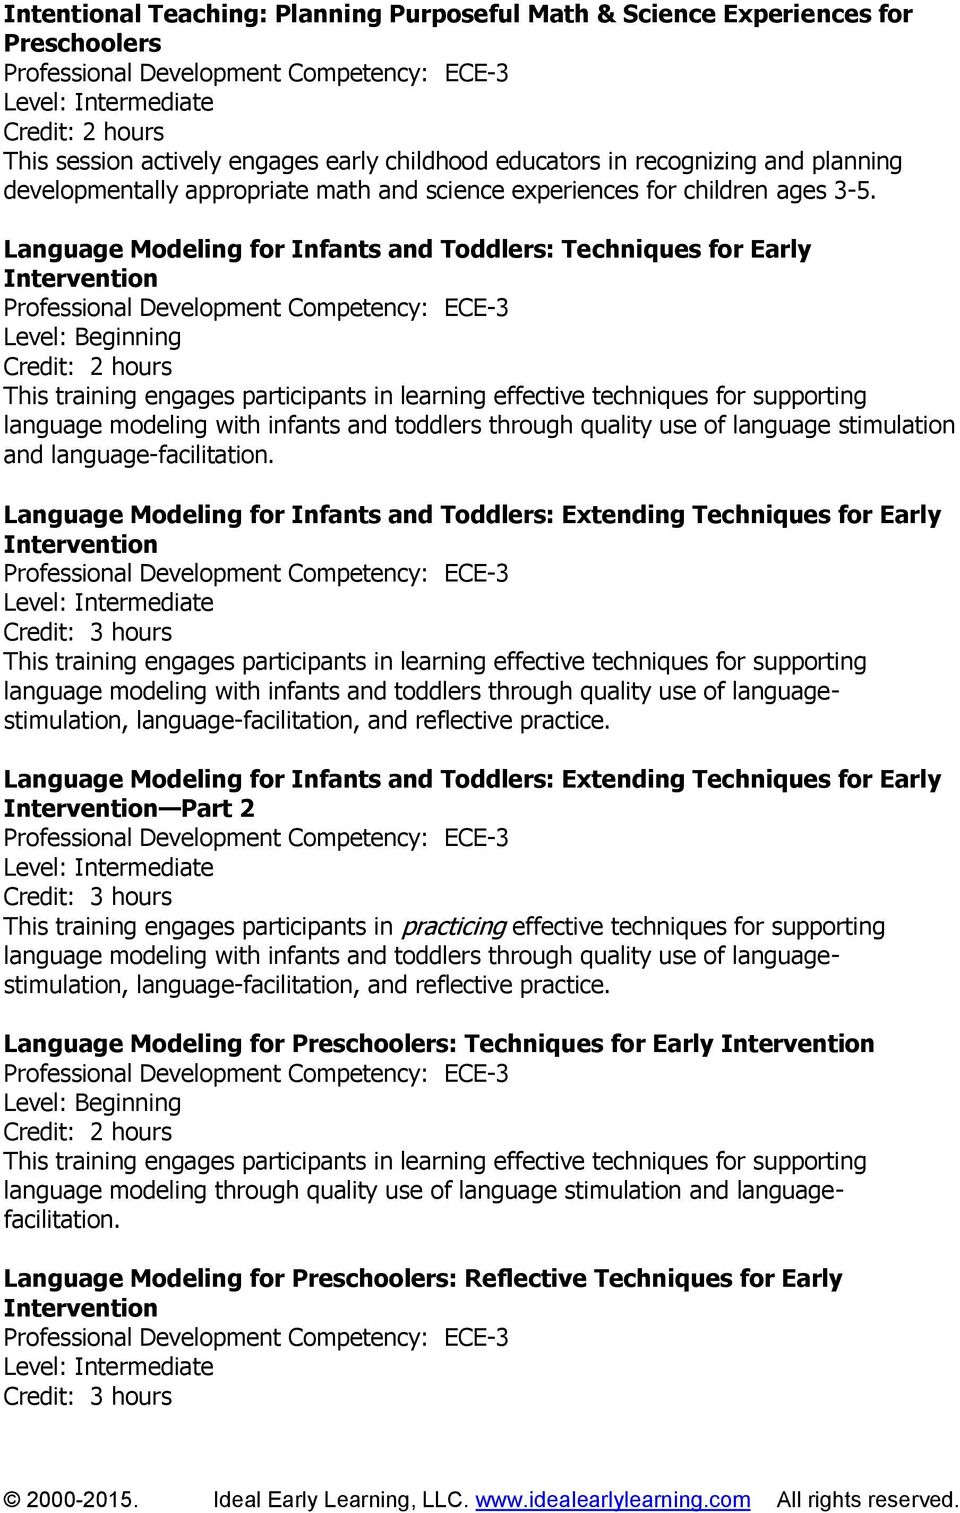 Language Modeling for Infants and Toddlers: Techniques for Early Intervention This training engages participants in learning effective techniques for supporting language modeling with infants and